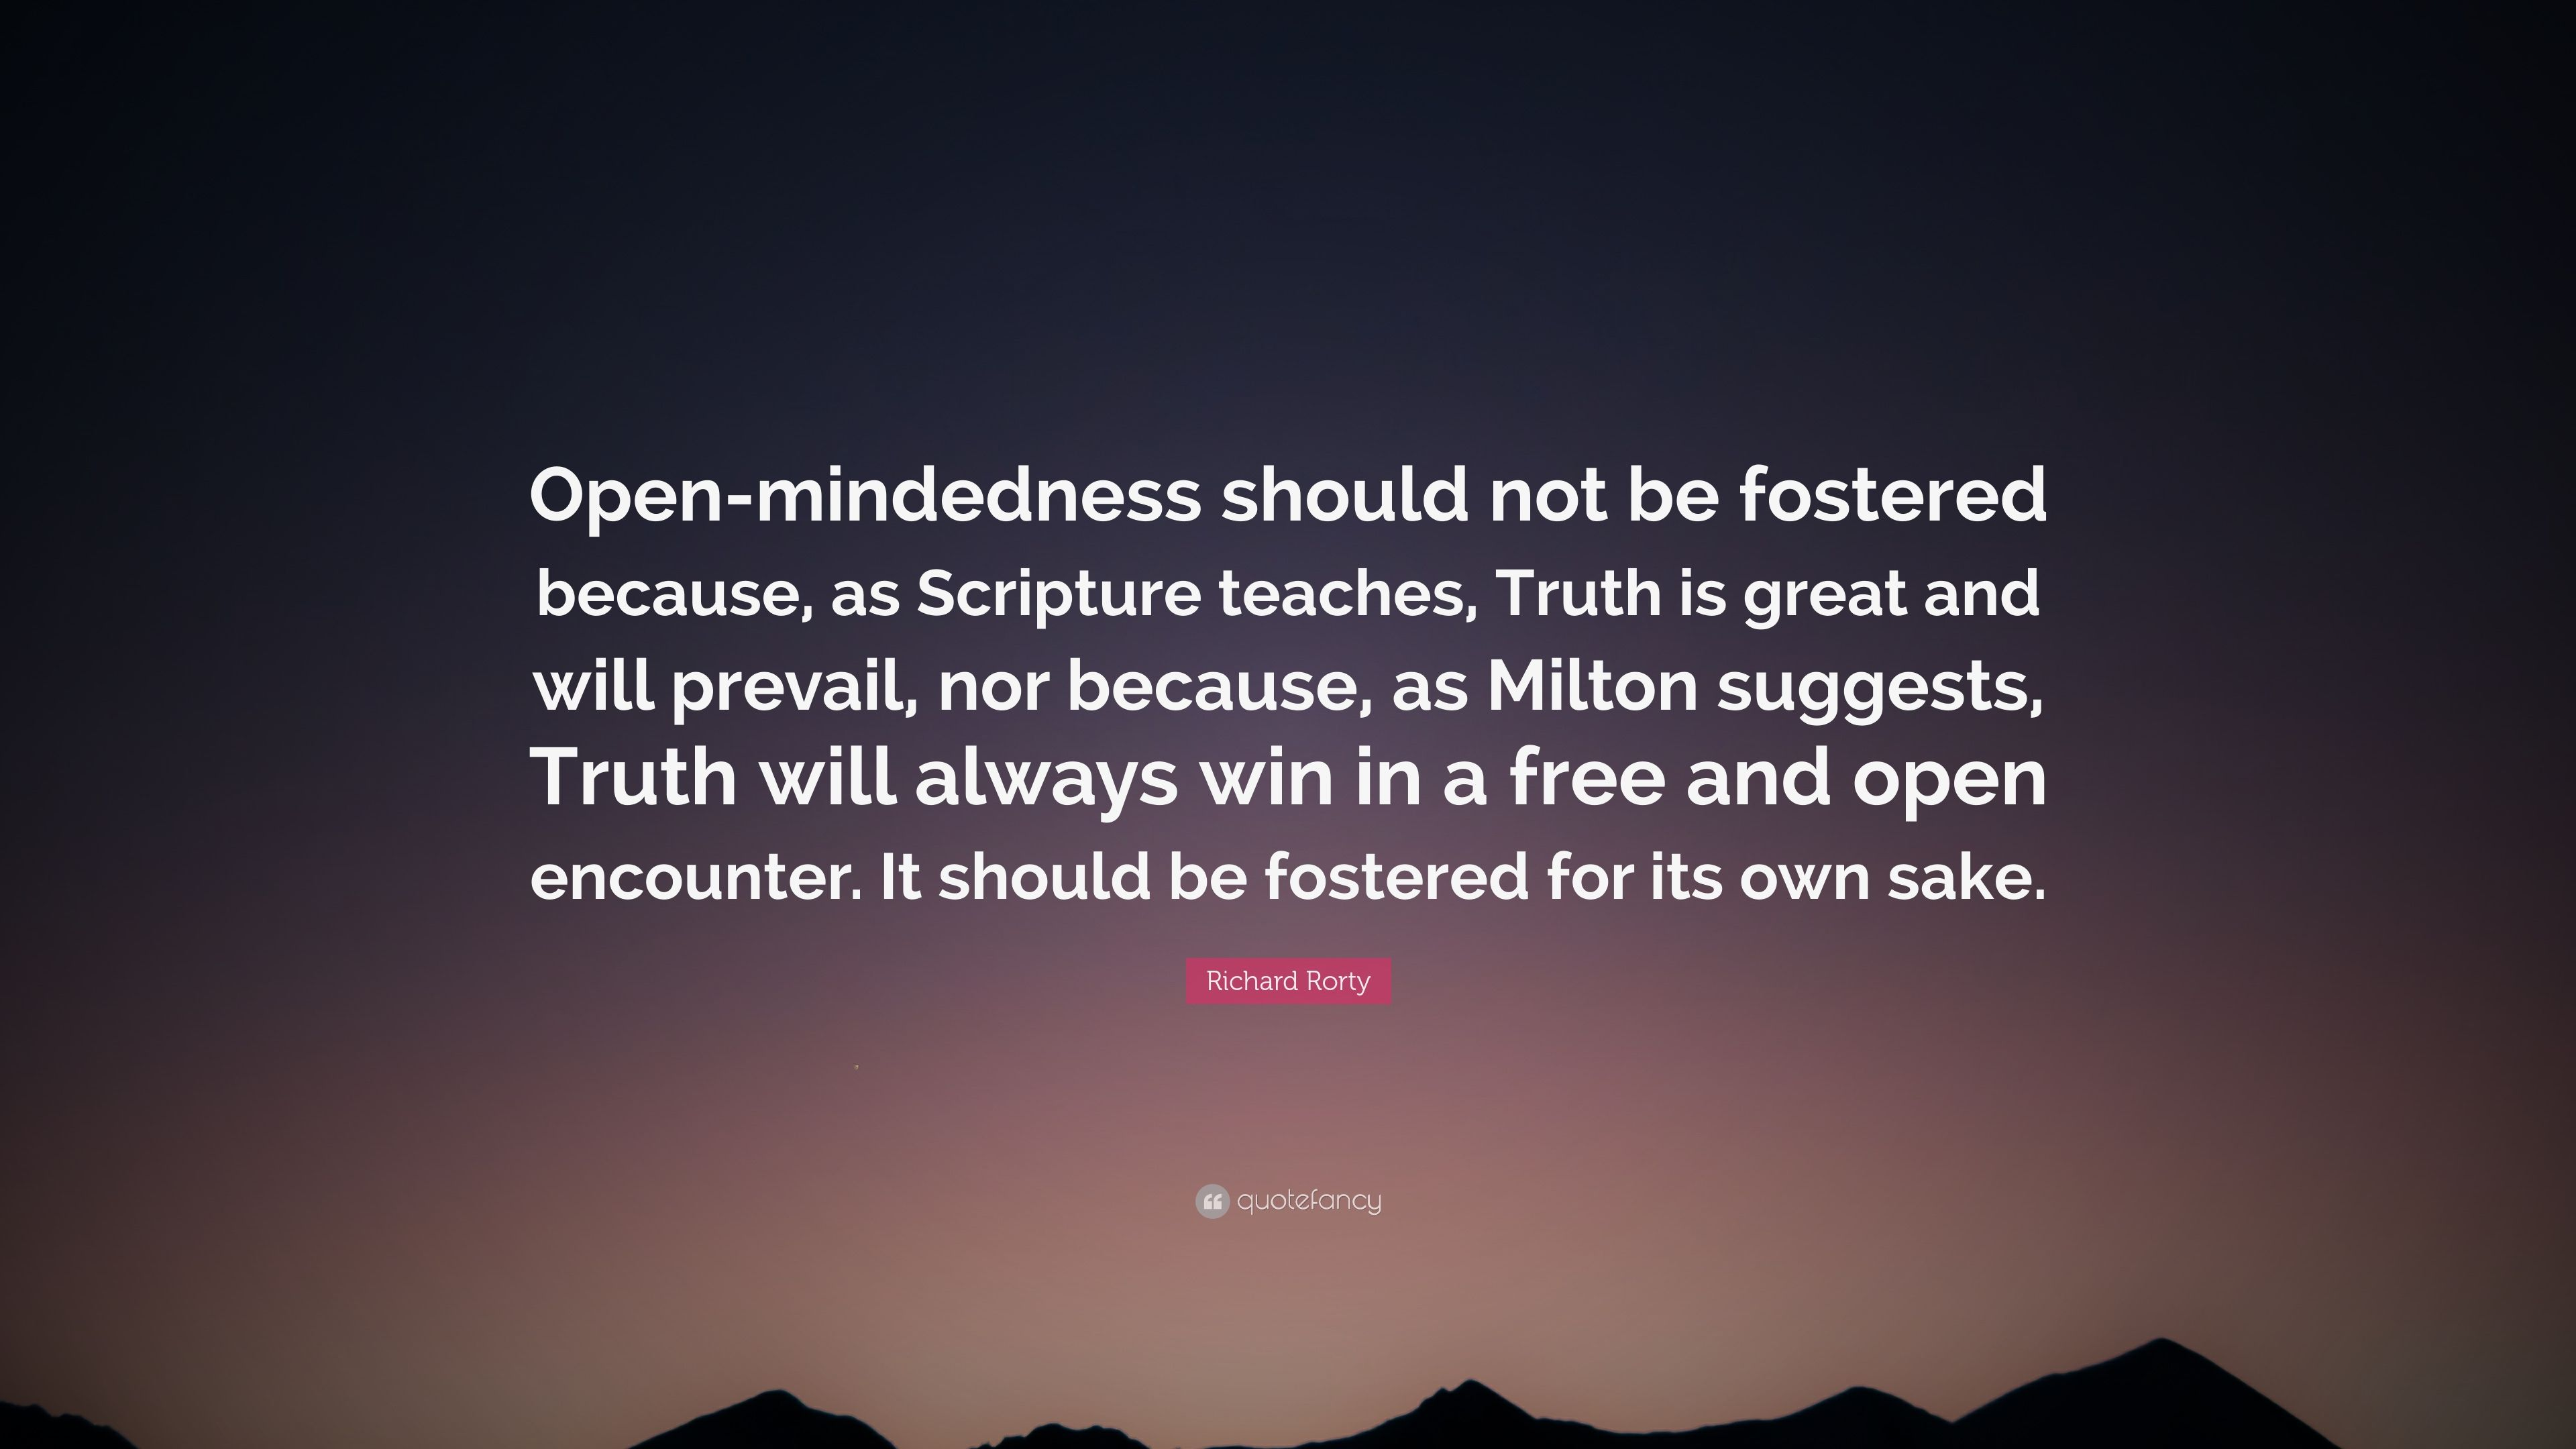 richard rorty quote open mindedness should not be fostered because as scripture